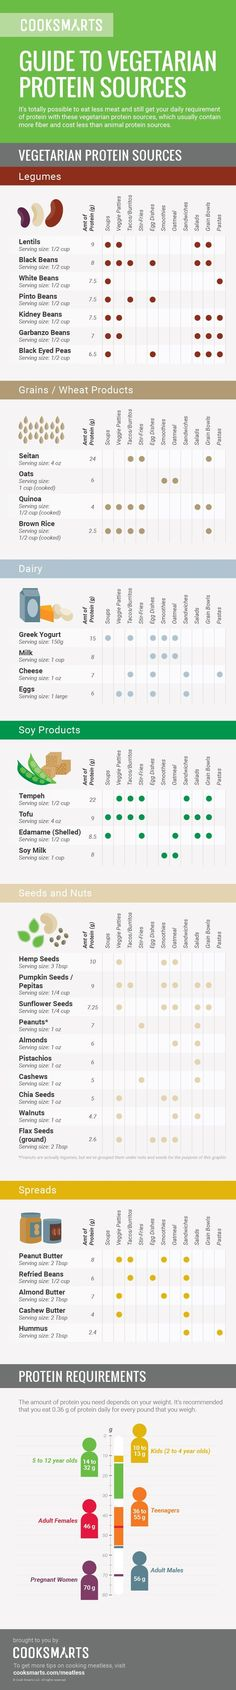 Get your daily requirement of protein with a variety of vegetarian protein sources, which usually contain more fiber and cost less than animal protein sources. #infographic #meatless #vegetarian via @cooksmarts #nutritionplanvegetarian